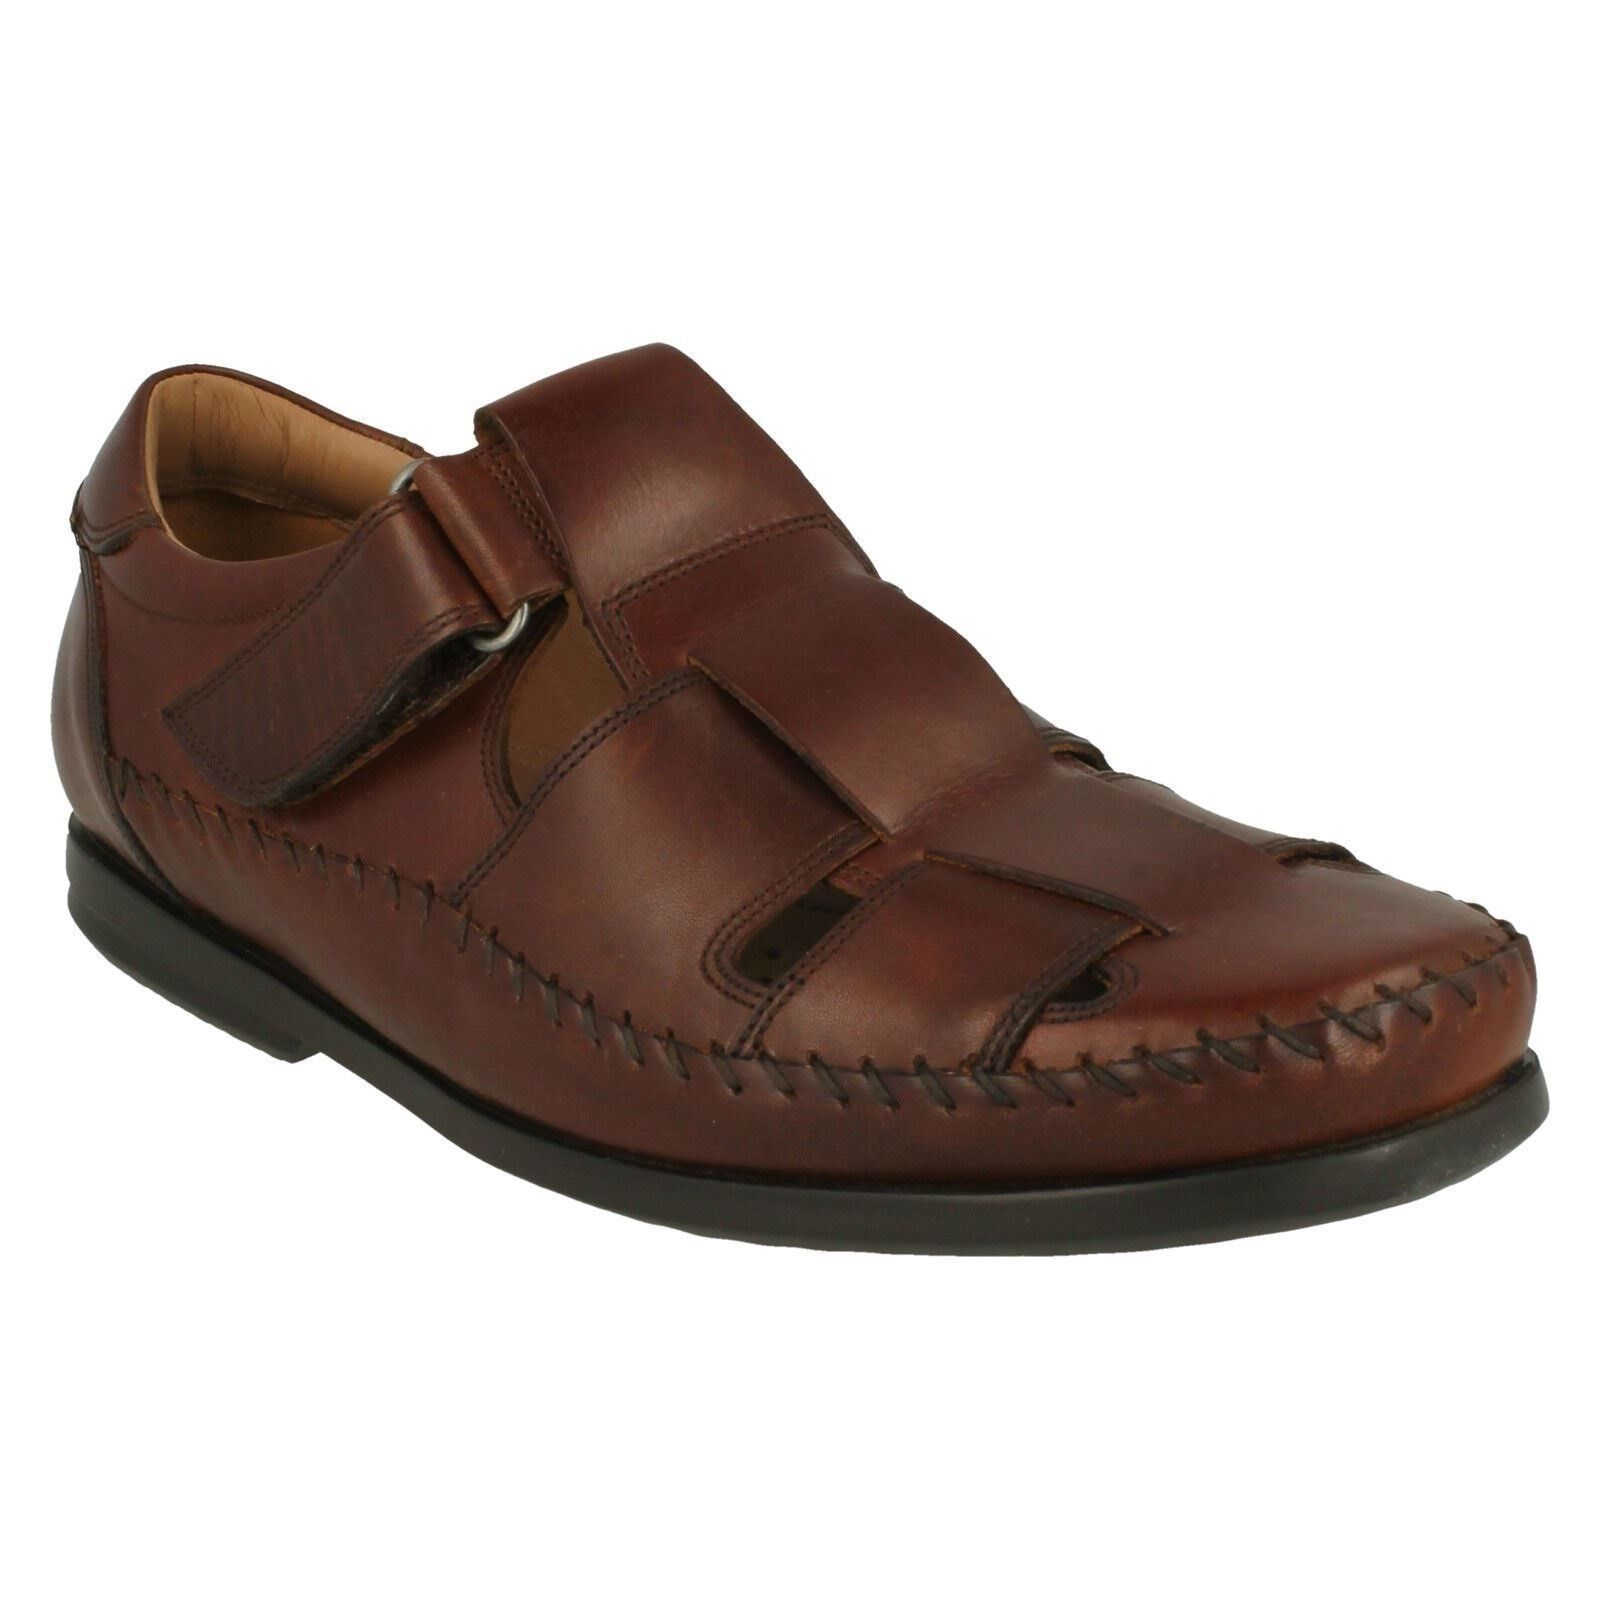 MENS CLARKS LEATHER UNSTRUCTUrojo CLOSED IN SUMMER SANDALS zapatos UN GALA STRAP